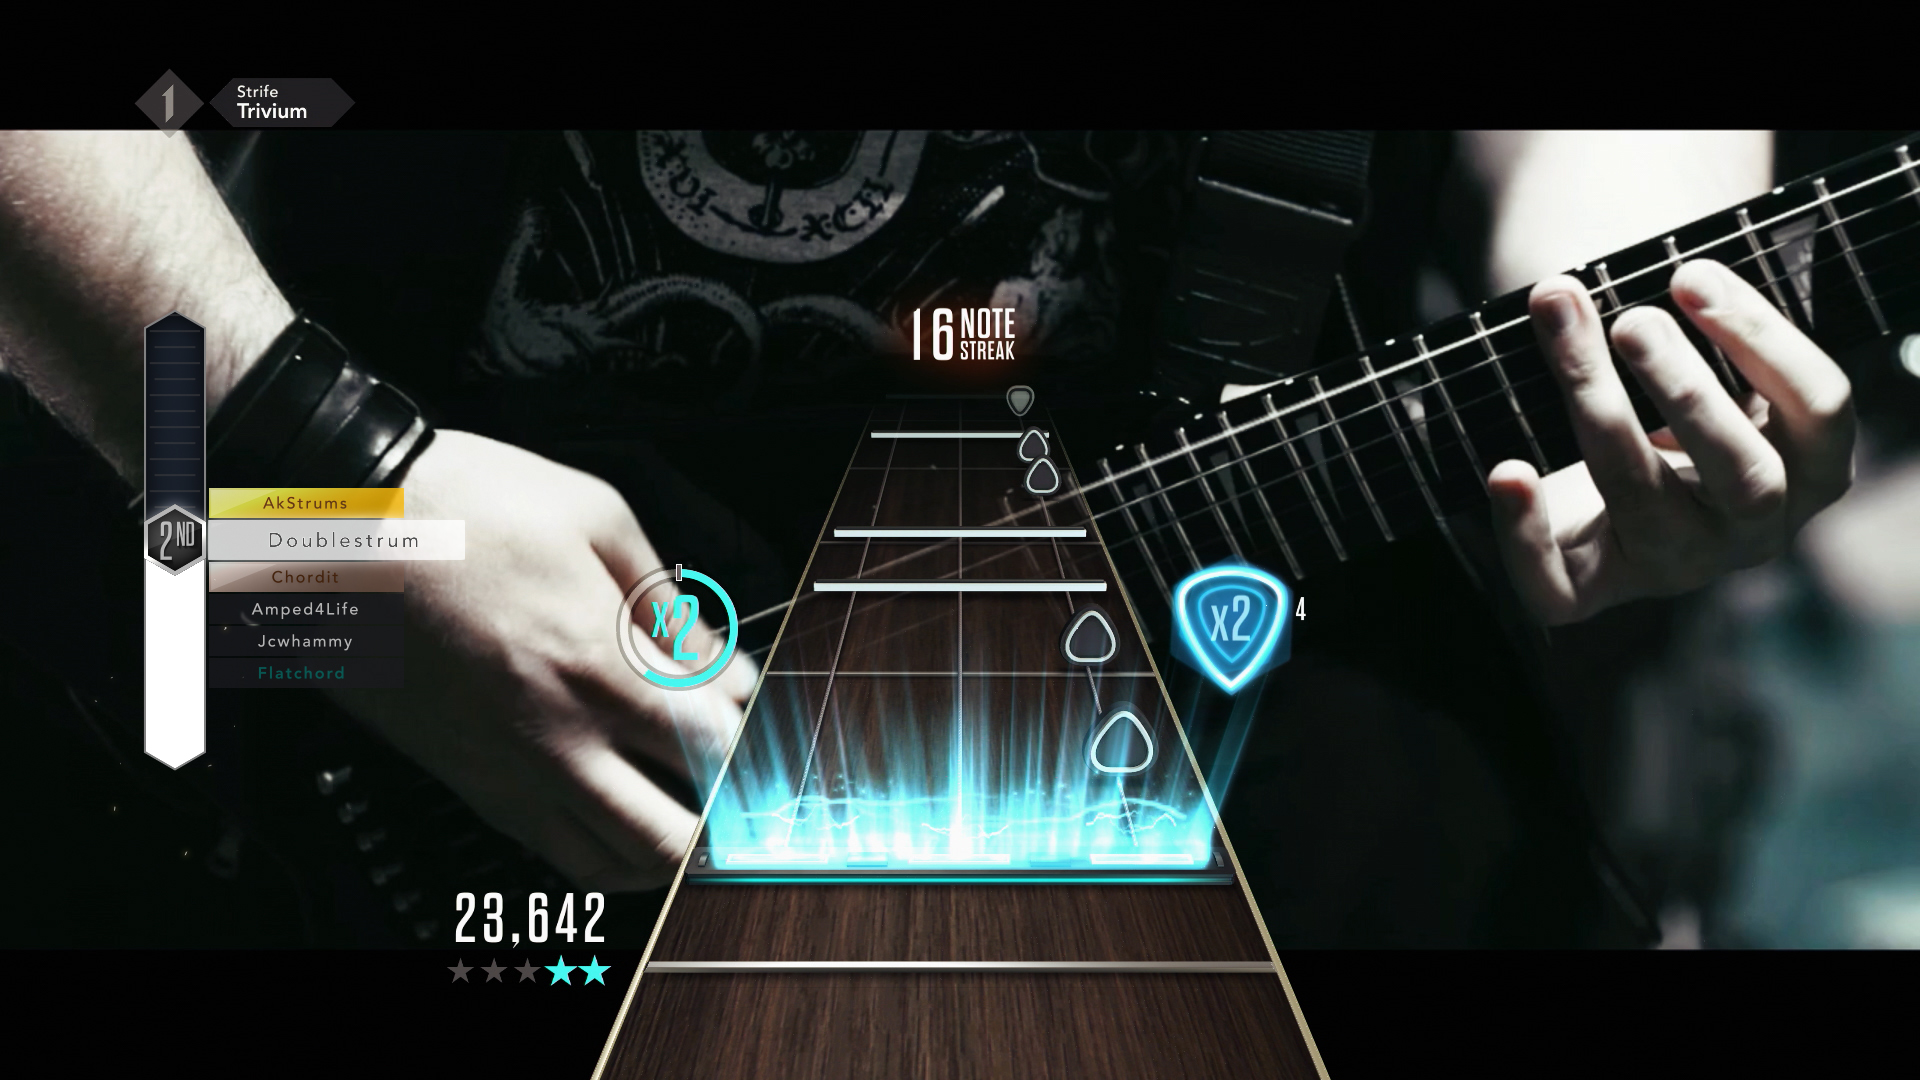 Through the Fire and Flames Debuts In Guitar Hero Live